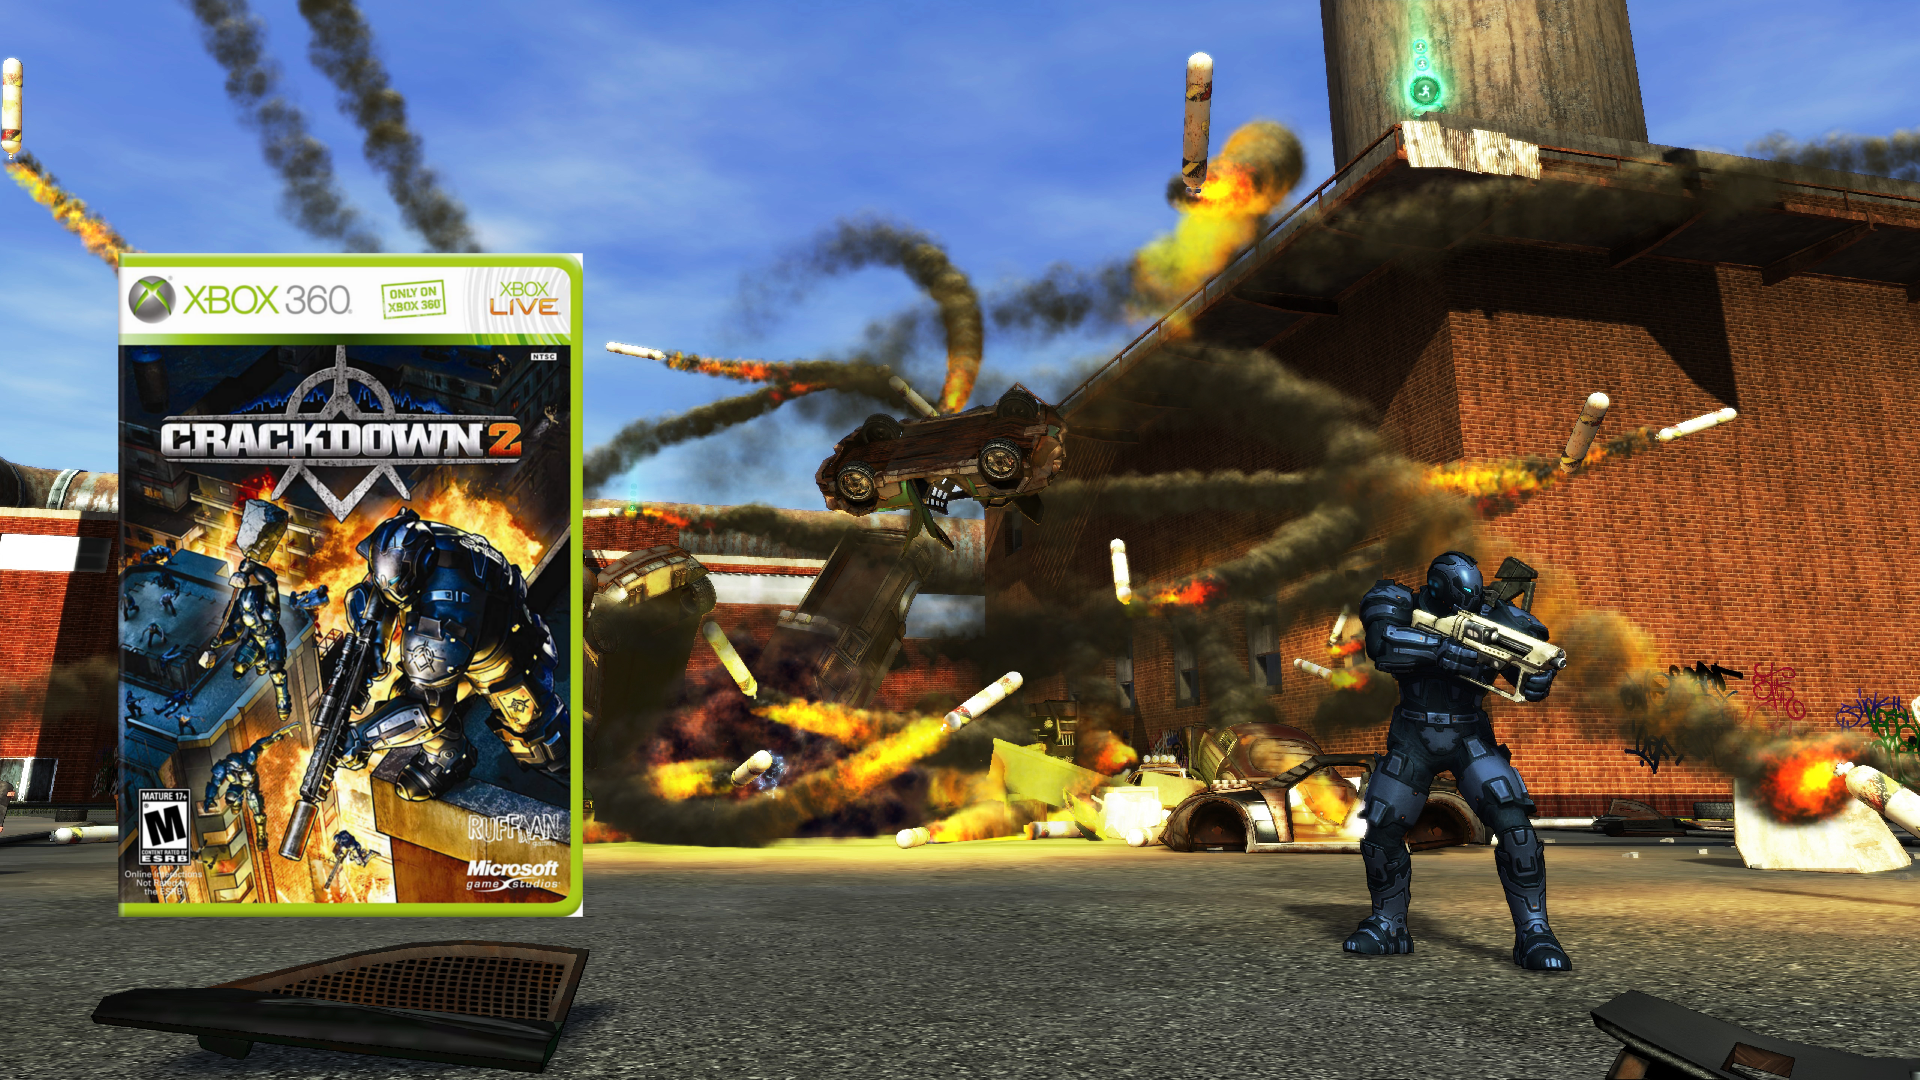 You can now download Crackdown 2 for free on Xbox One - 9to5Toys